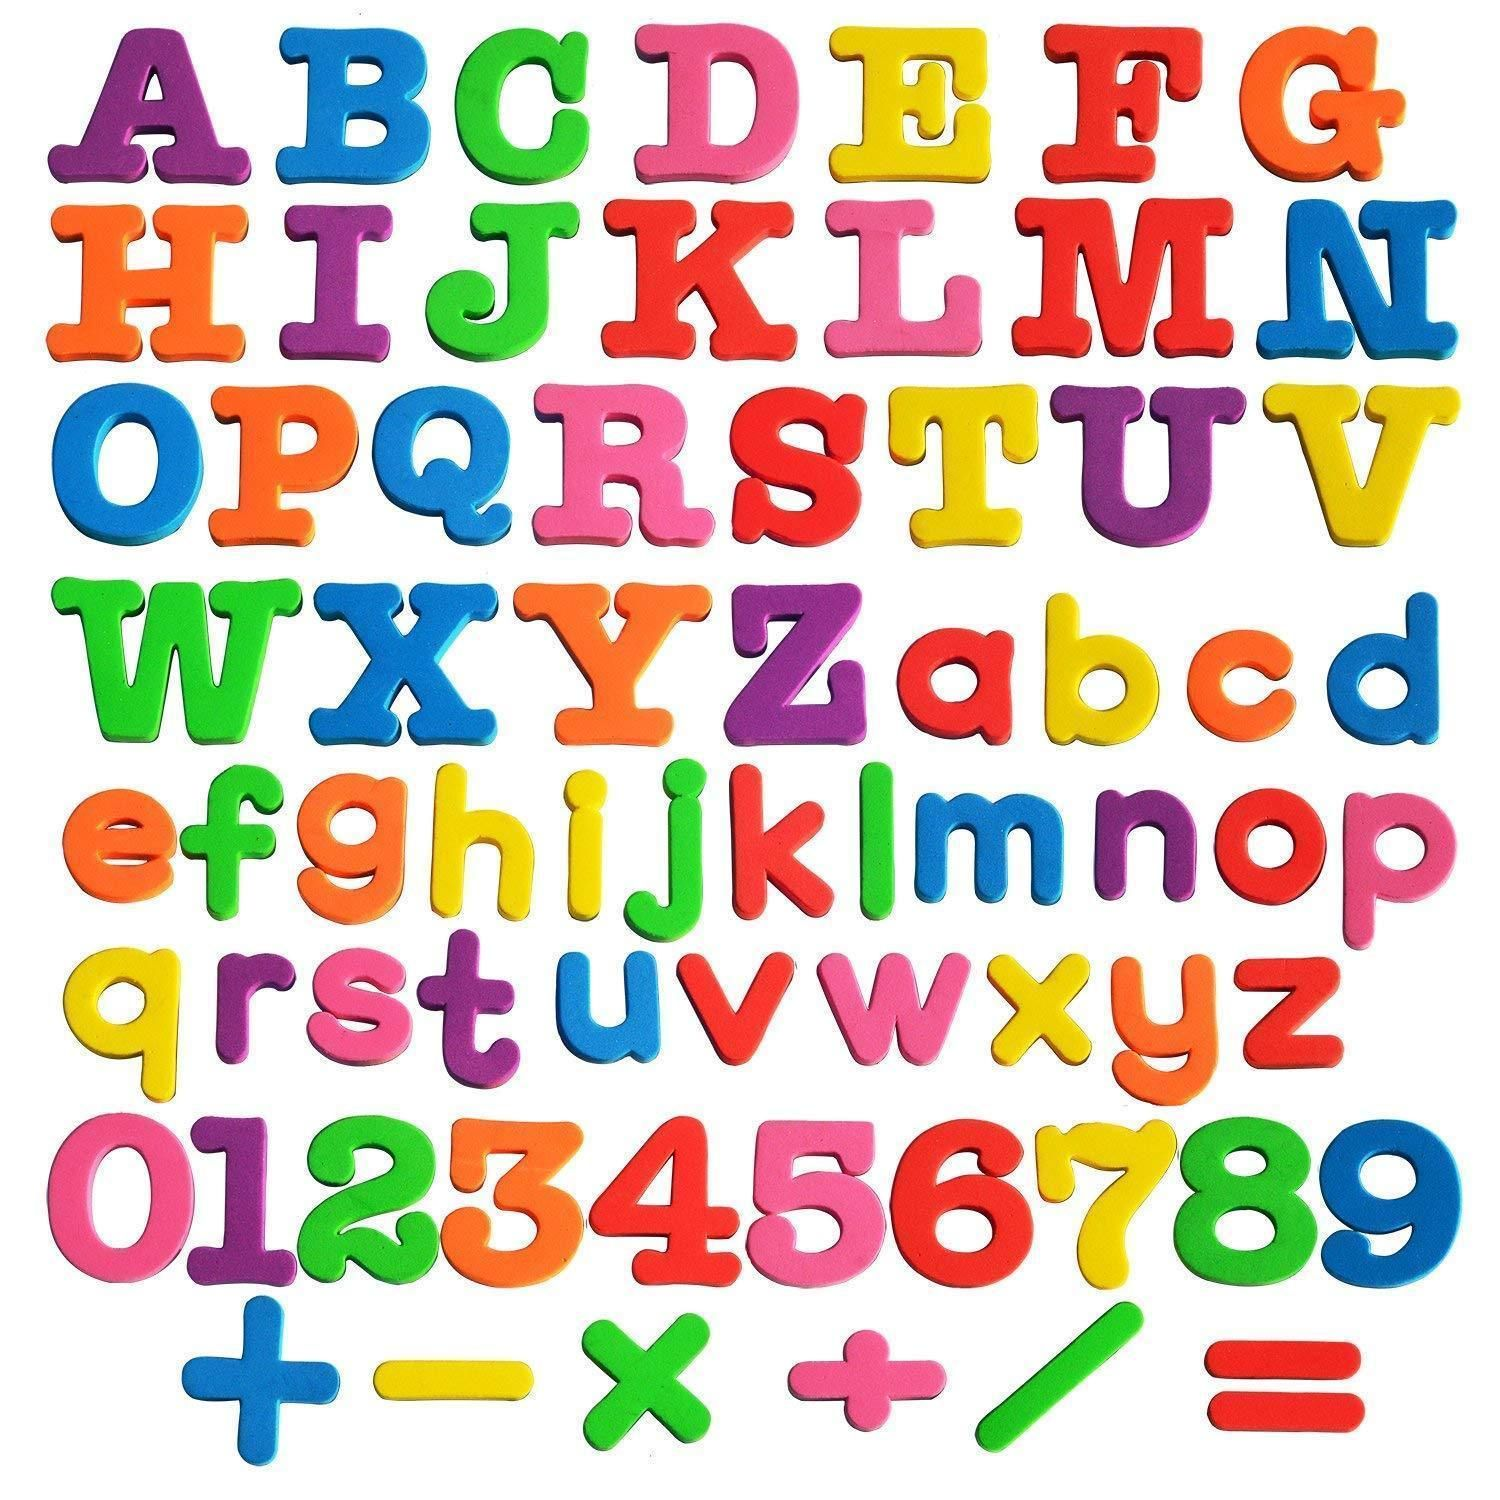 Magnets 145933 Magnetic Letters And Number Abc Magnets For Kids Gift Set Alphabet Refrigerator Buy It Now Alphabet Magnets Kids Gift Sets Magnetic Letters